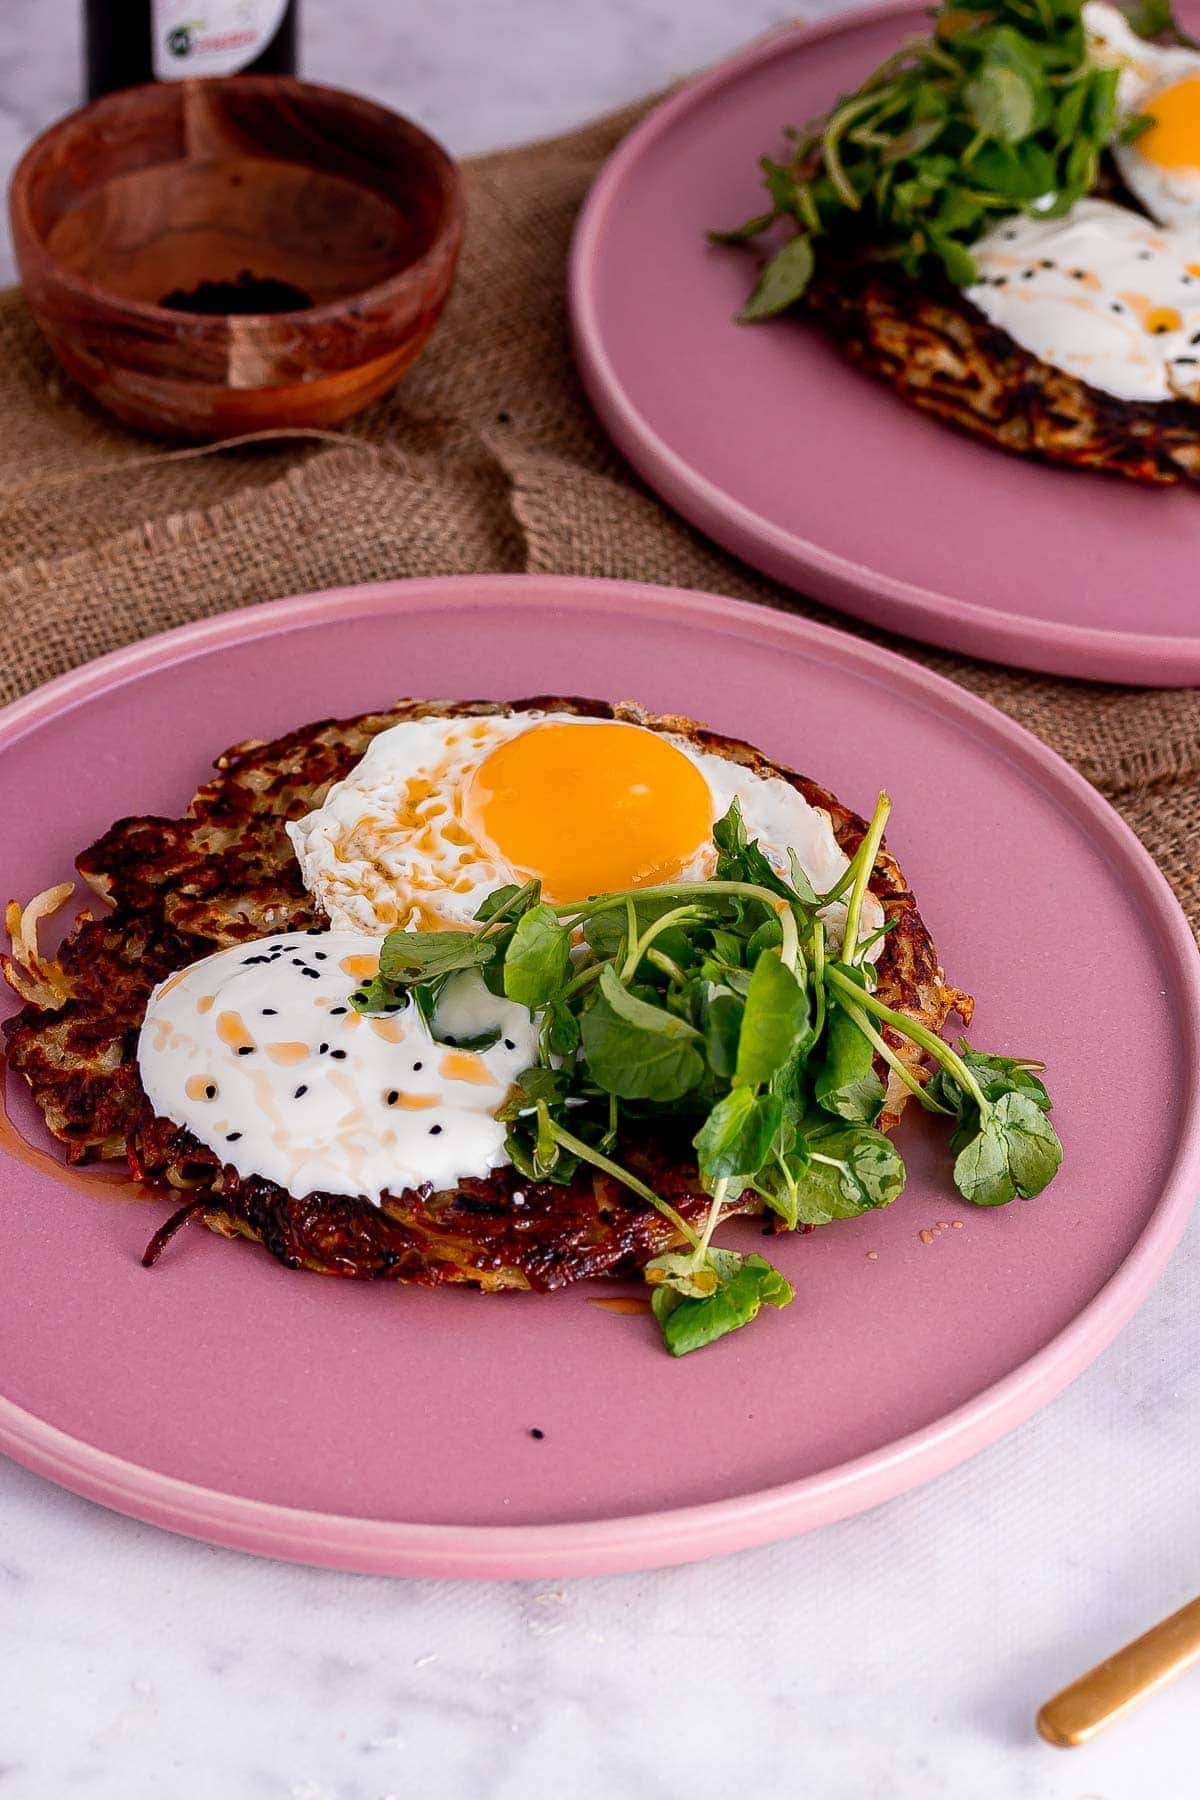 Plate of potato rosti with yoghurt and egg on a marble surface